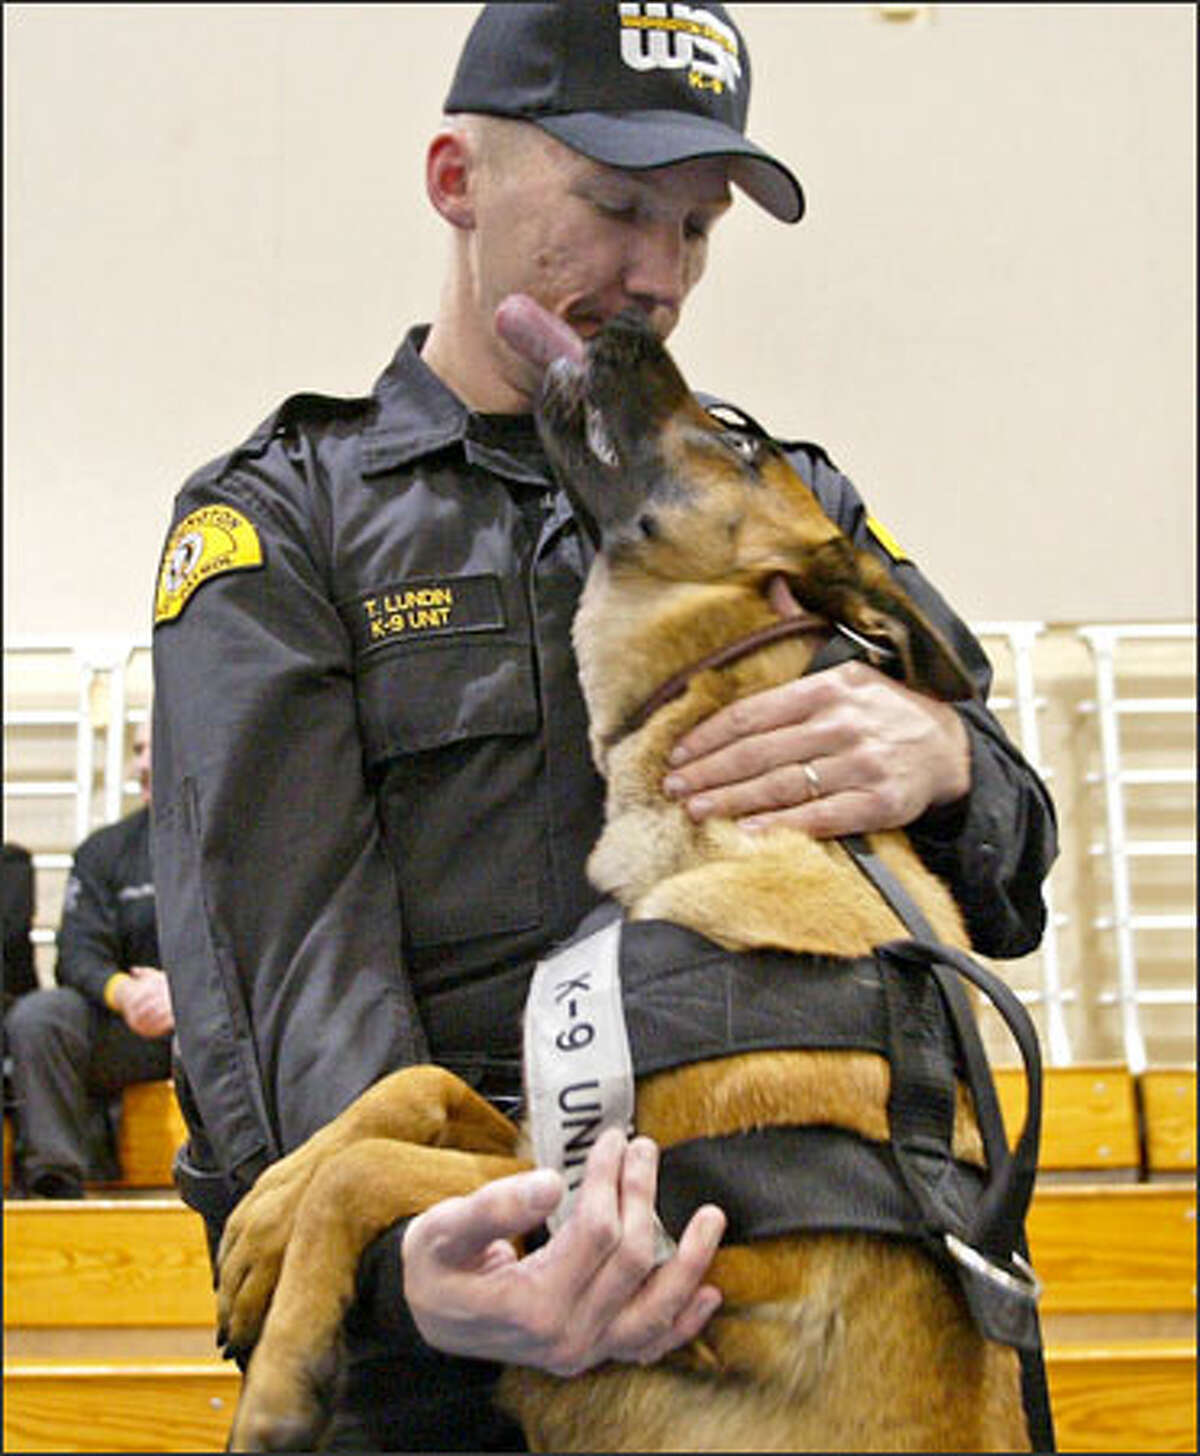 State Patrol Trooper Thomas Lundin gets a big, sloppy kiss from 2-year-old Penny, a Belgian Malinois. Penny is an explosive-detection dog. Twenty dogs with the patrol's Canine Unit graduated at the patrol's academy near Shelton on Tuesday. The dogs will help provide security for Washington State Ferries and in other locations throughout the state.